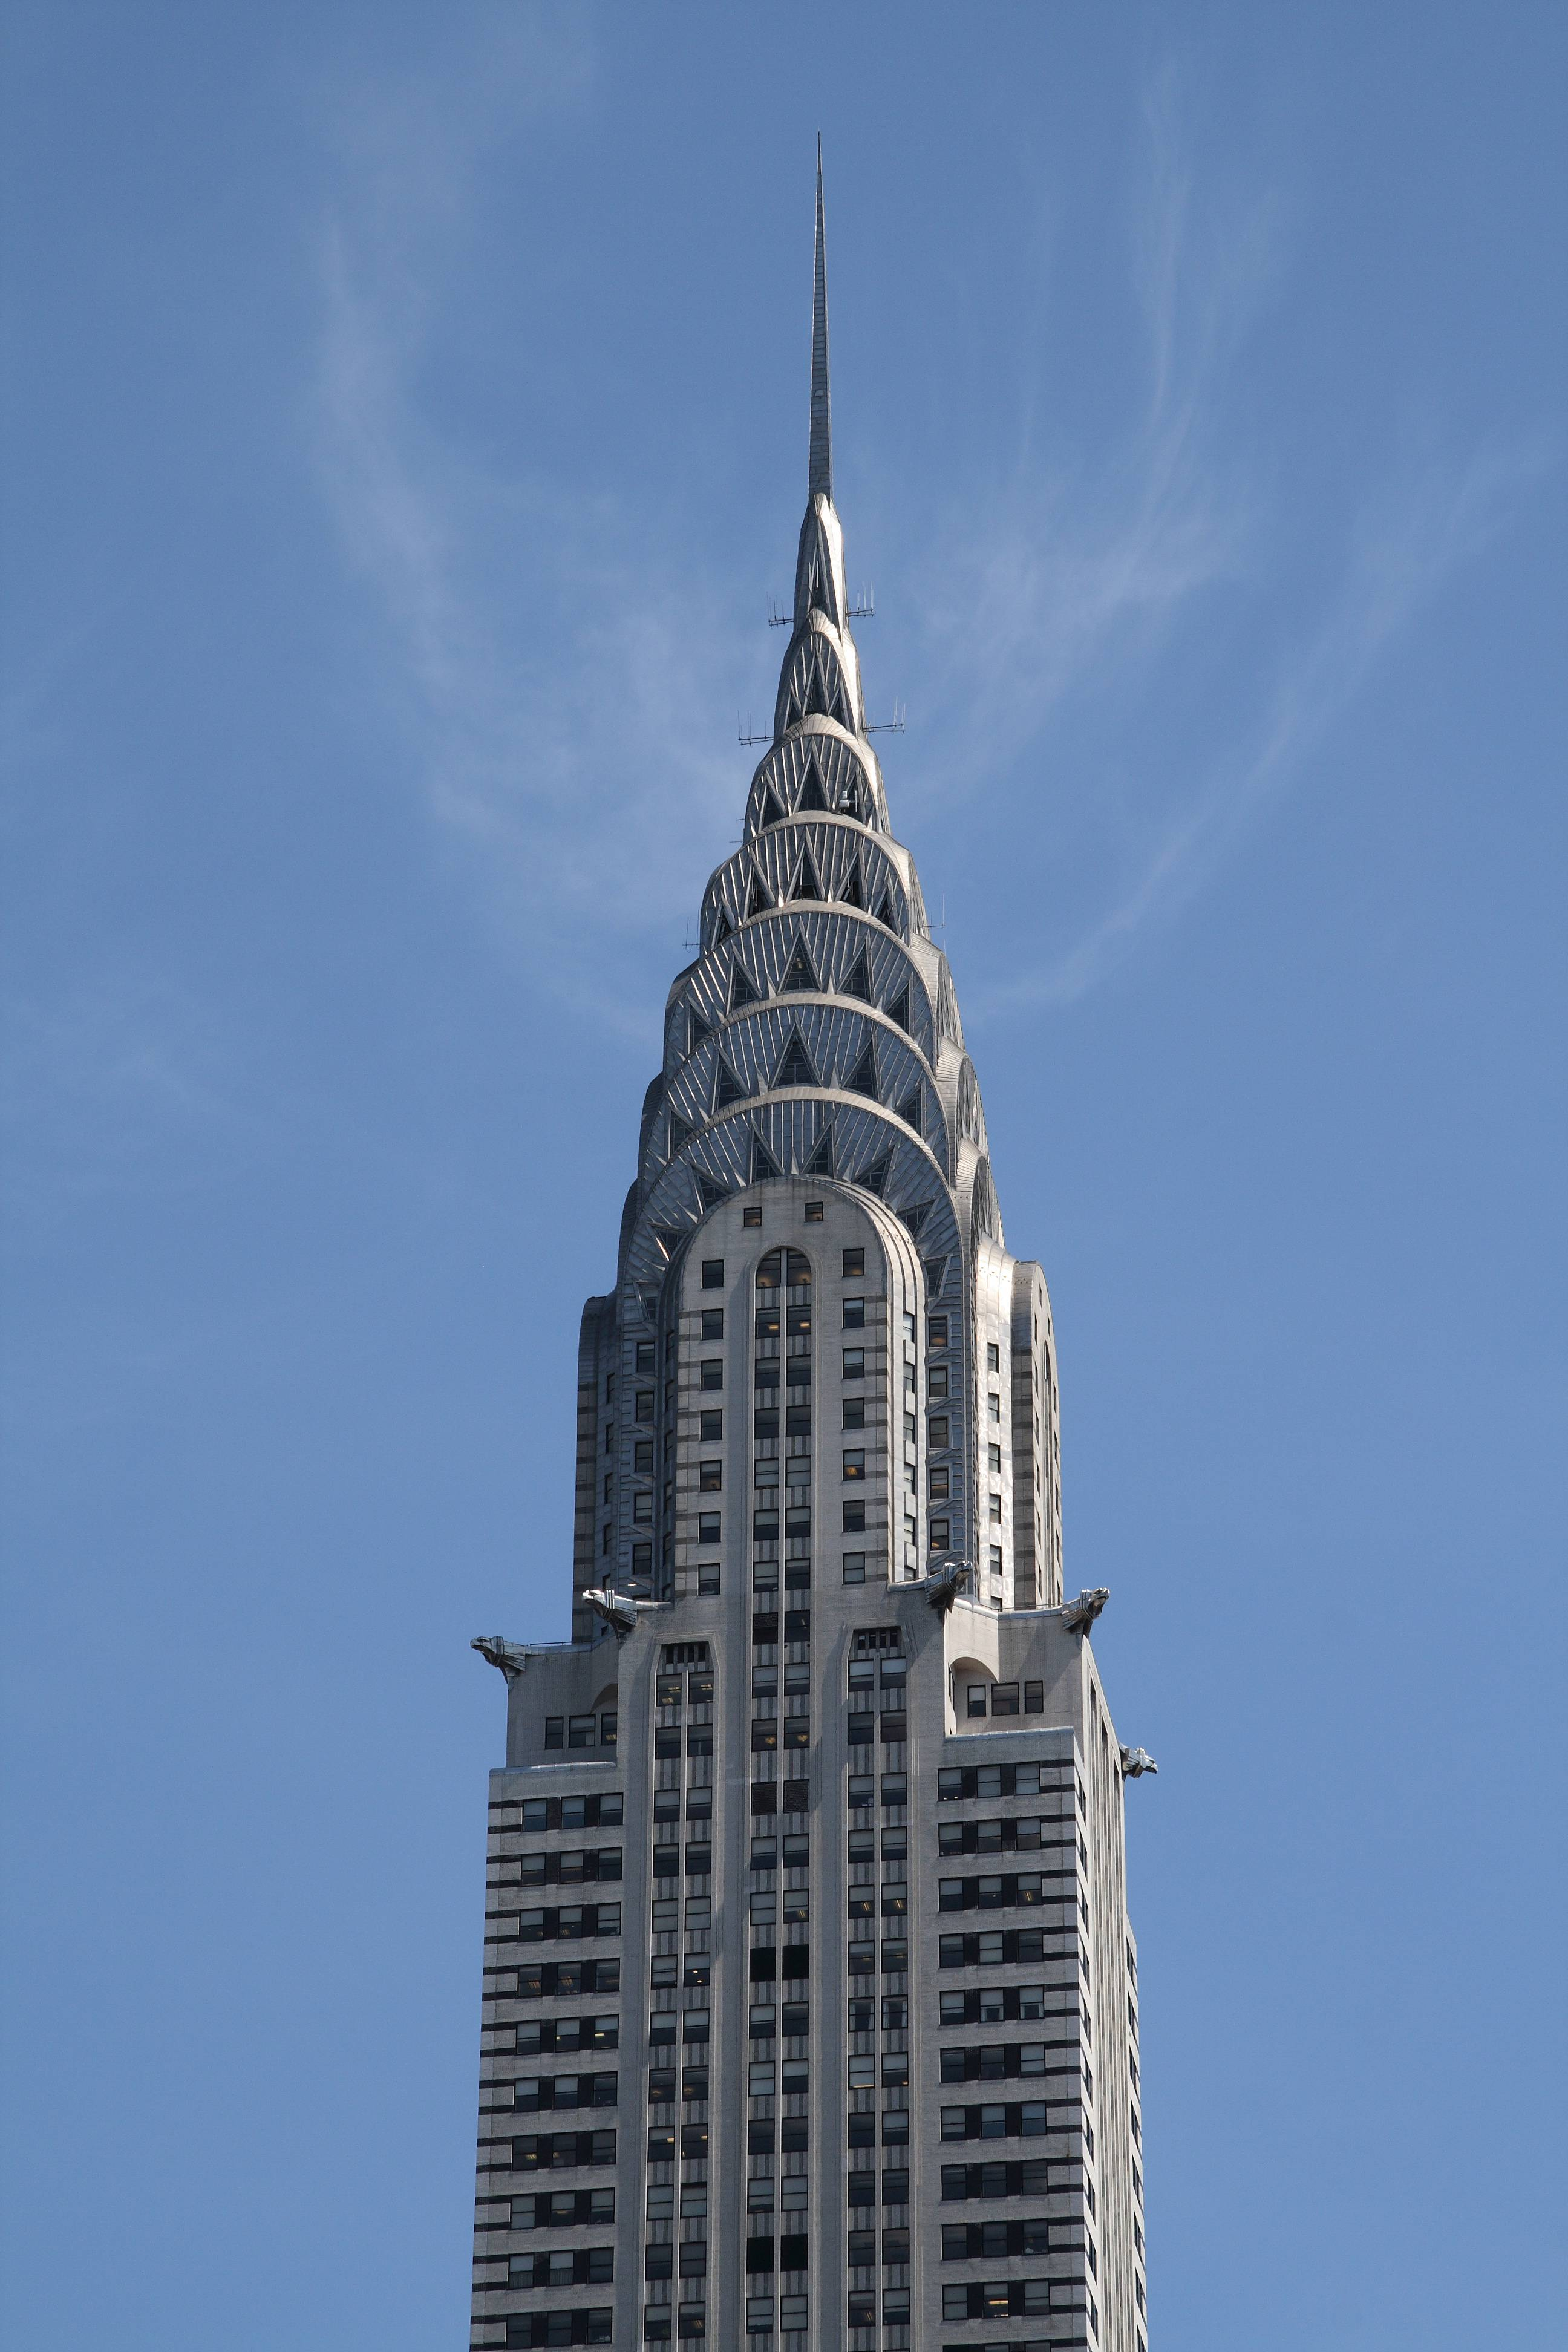 chrysler building wallpaper wallpapersafari. Black Bedroom Furniture Sets. Home Design Ideas